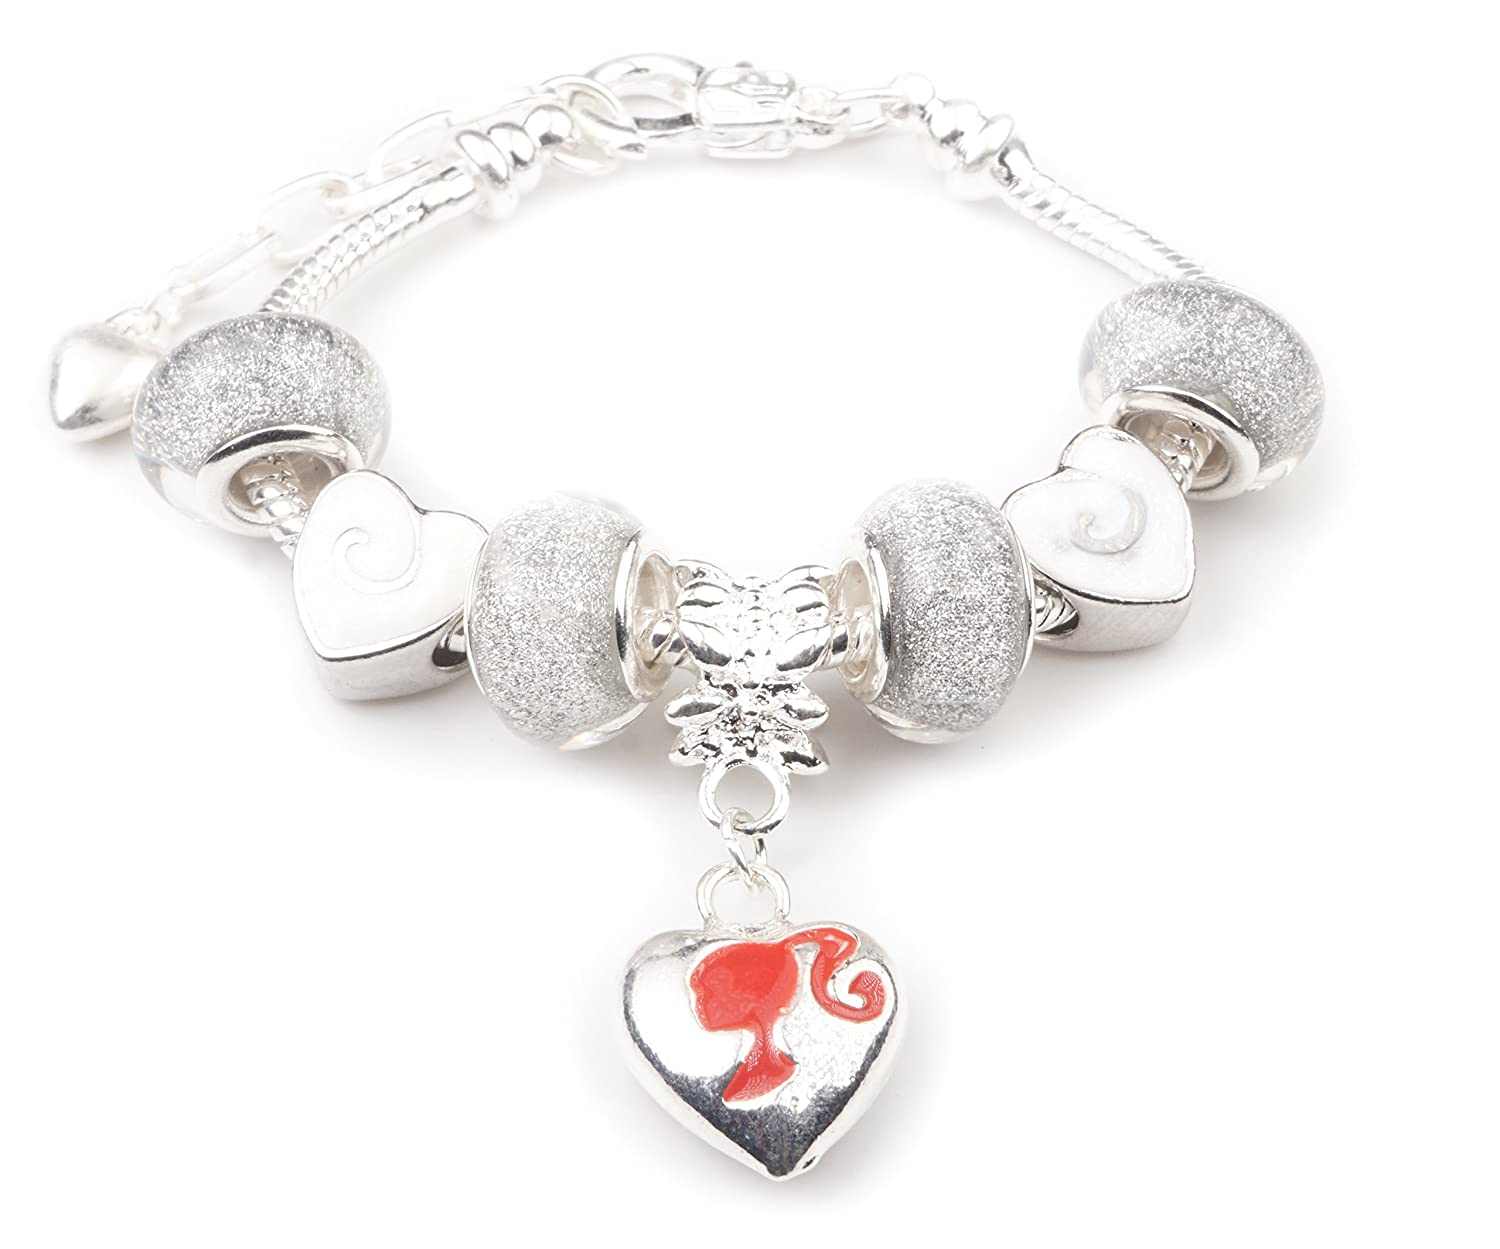 'Little Miss Dolly' Children's Charm Bracelet with Gift Box Girls Jewellery Jewellery Hut BRBARBIE